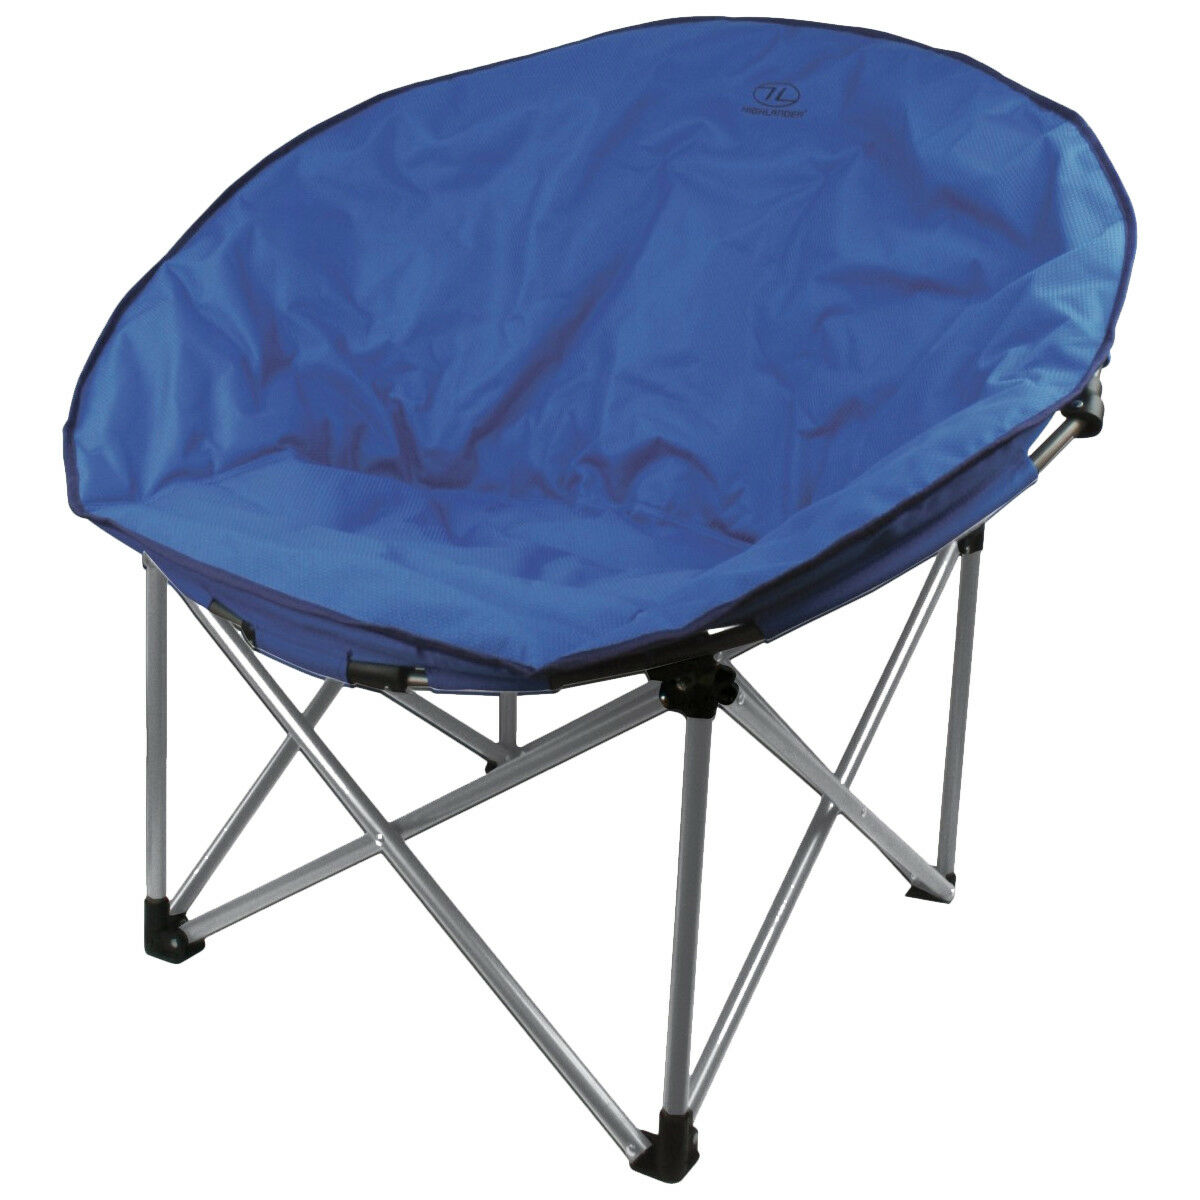 Highlander Deluxe Moon Chair Foldable BBQ Picnic Holiday Beach Camping bluee